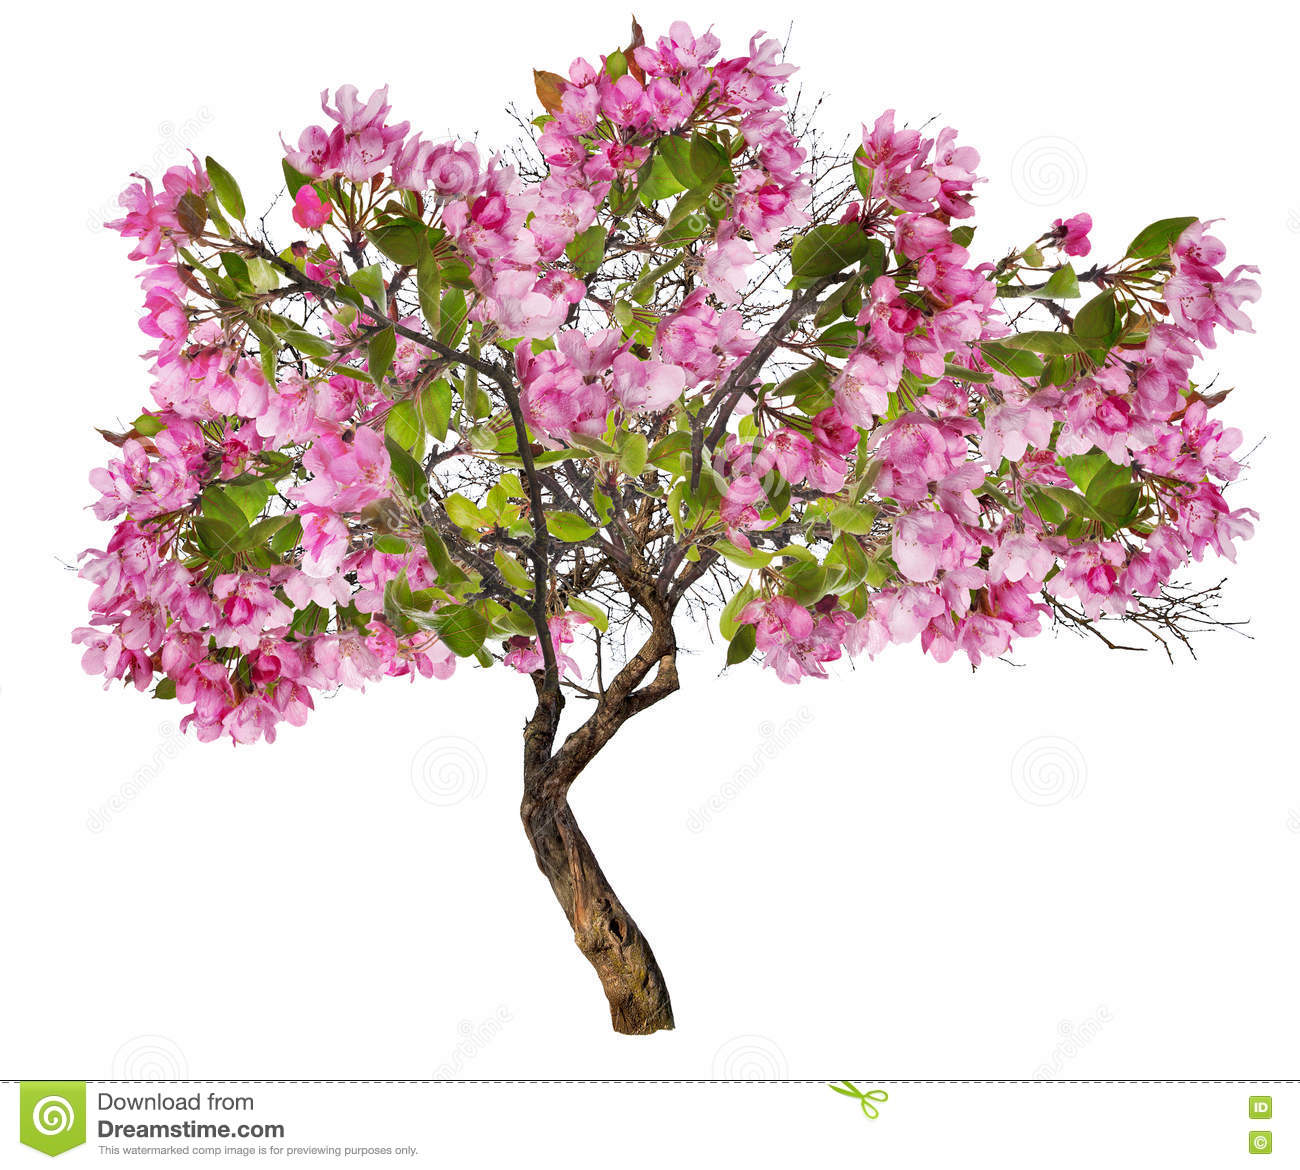 Apple tree with large pink blooms on white stock photo image of download apple tree with large pink blooms on white stock photo image of nature mightylinksfo